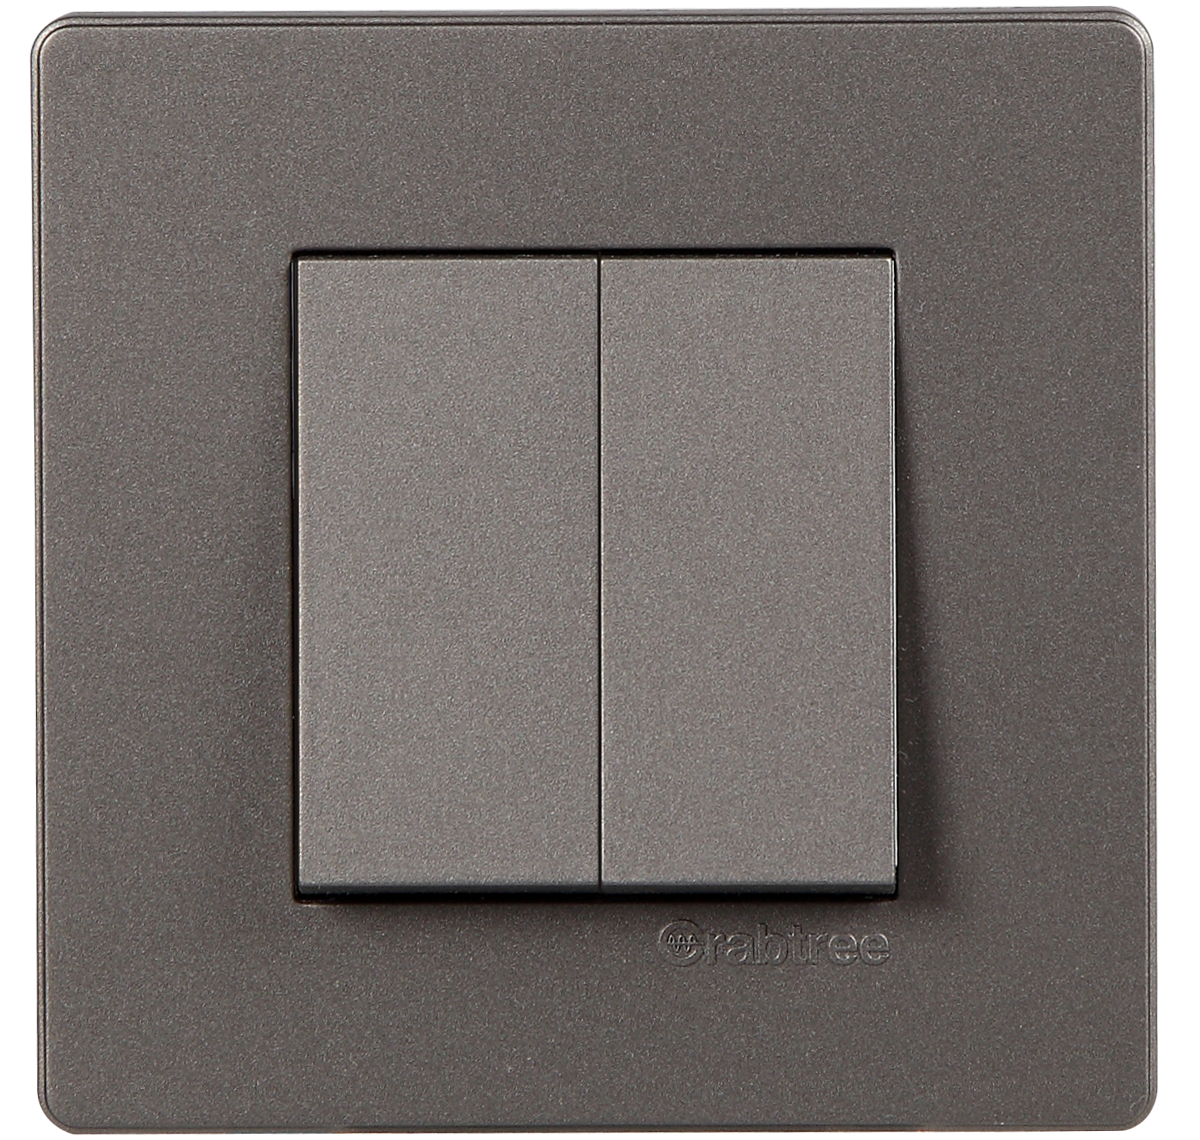 Crabtree - 2 M cover plate Grey